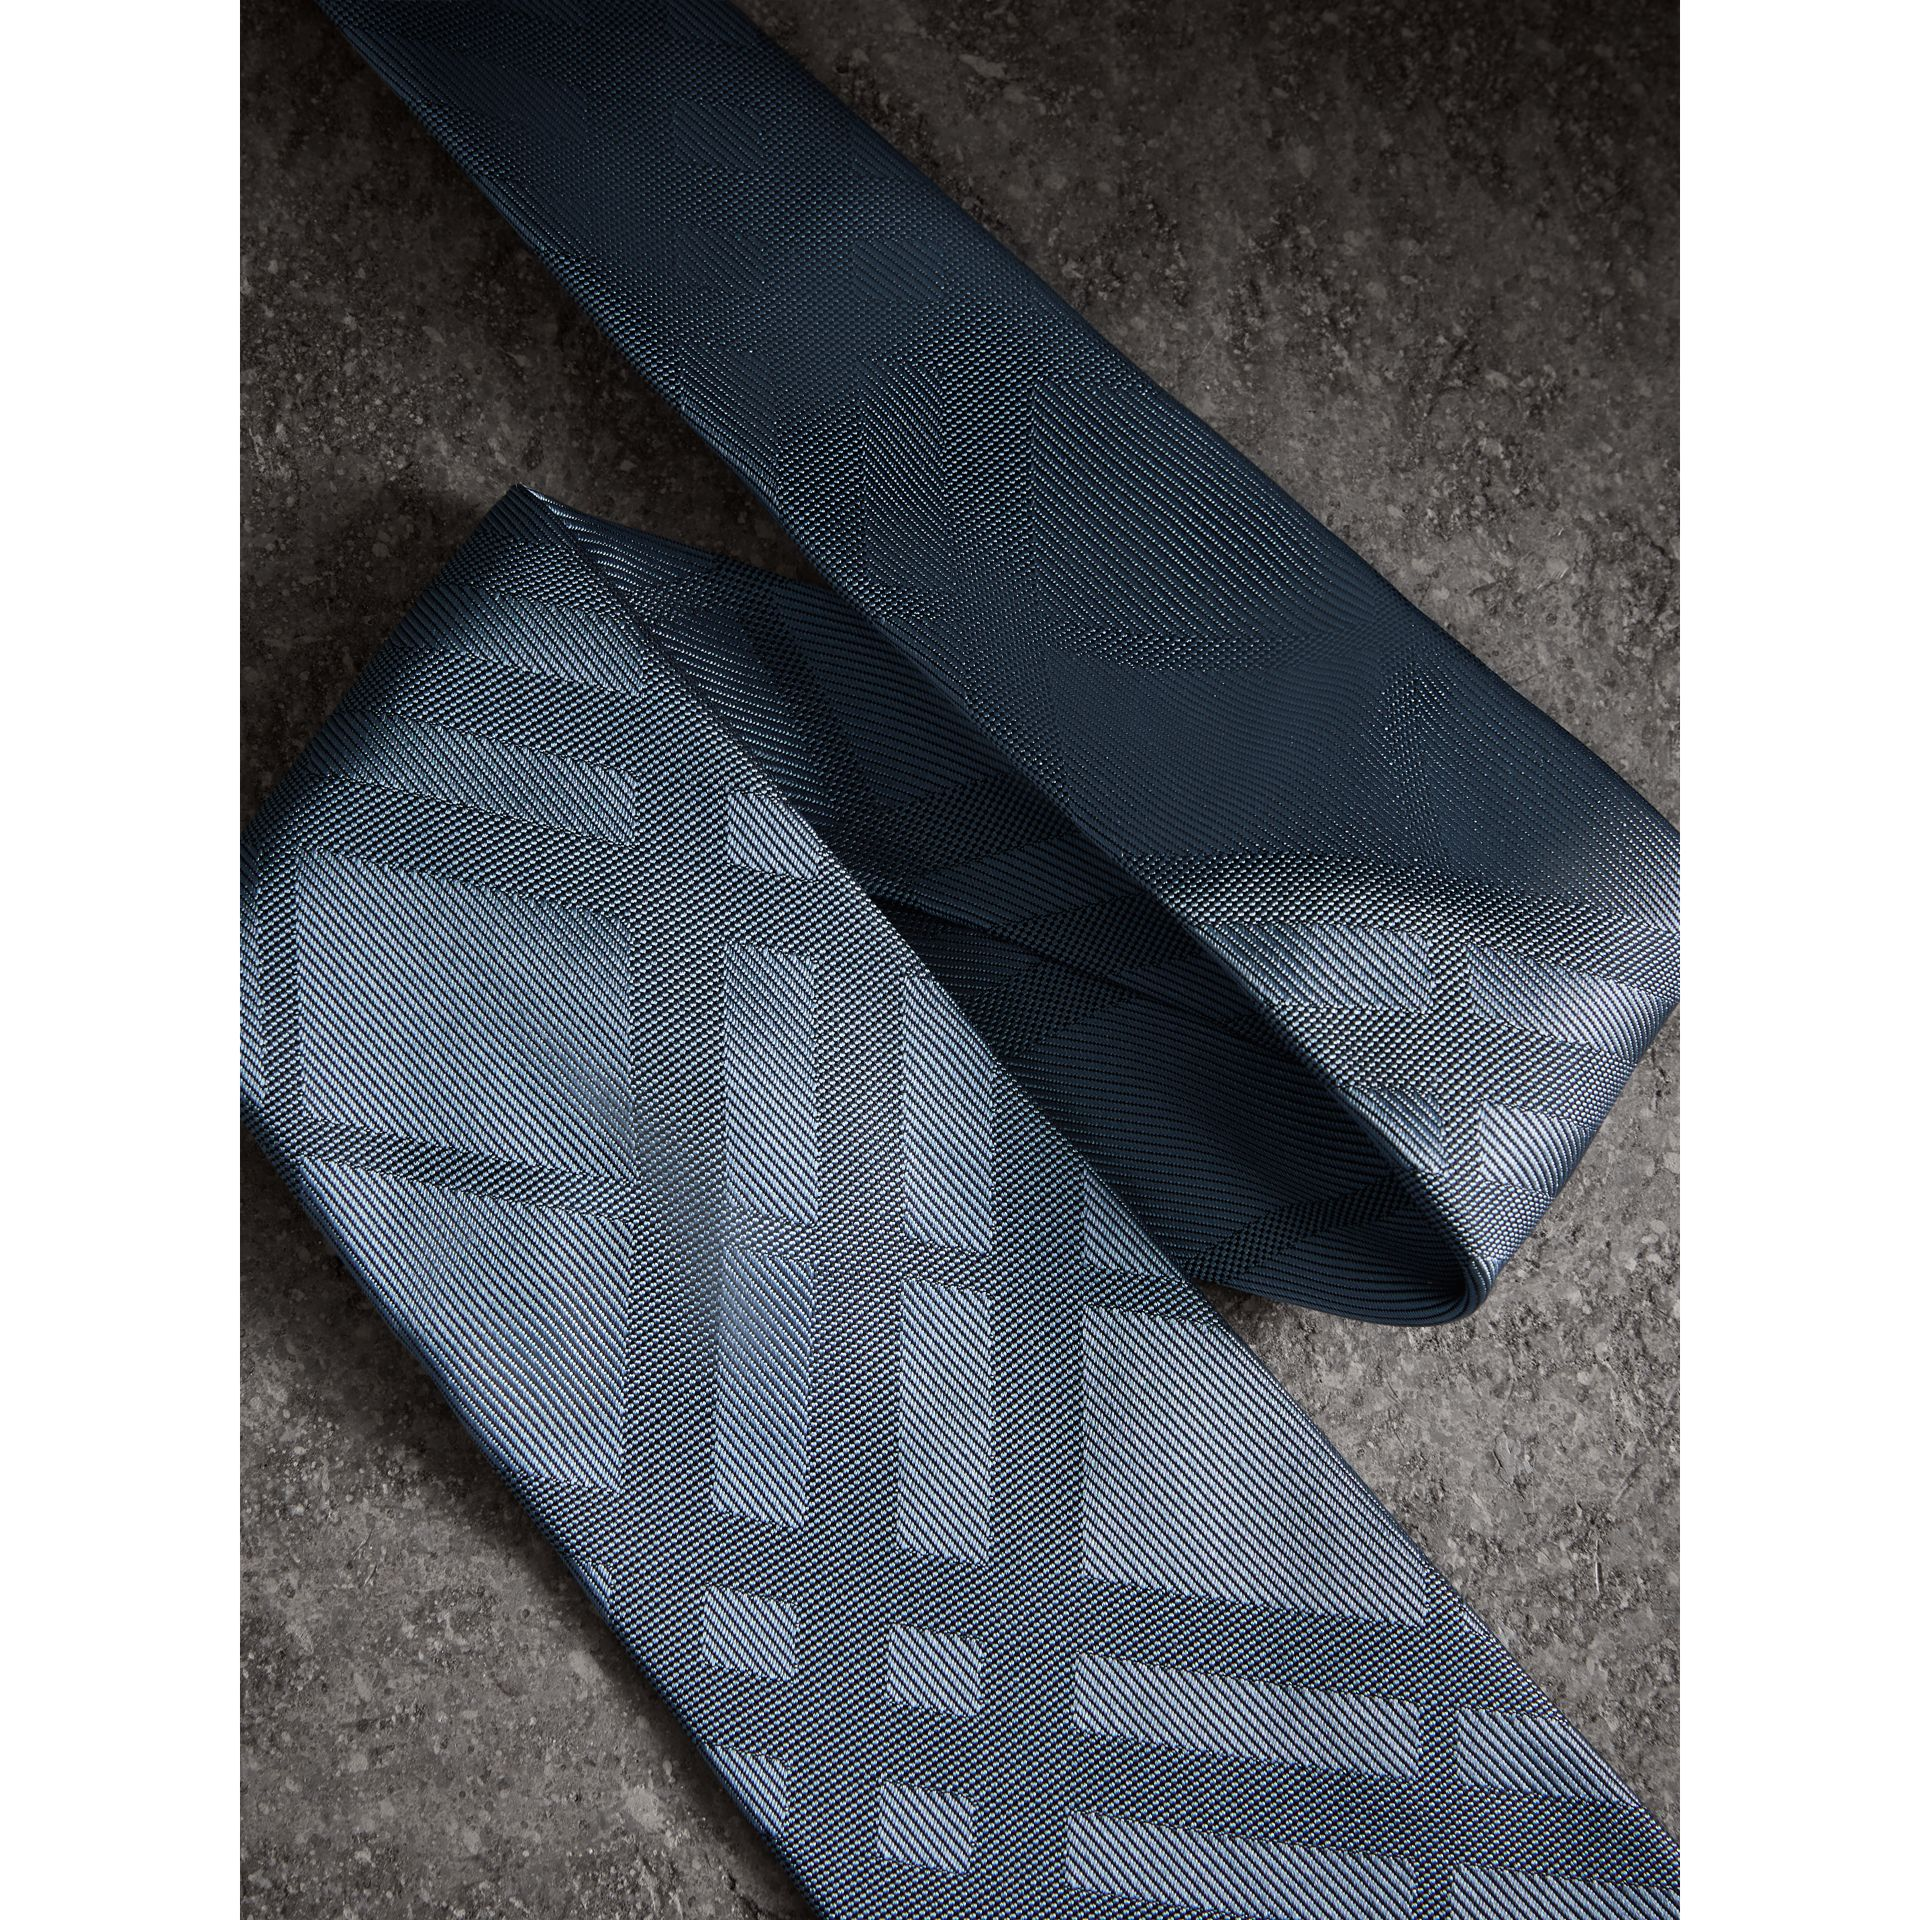 Classic Cut Check Silk Jacquard Tie in Light Blue - Men | Burberry Hong Kong - gallery image 1